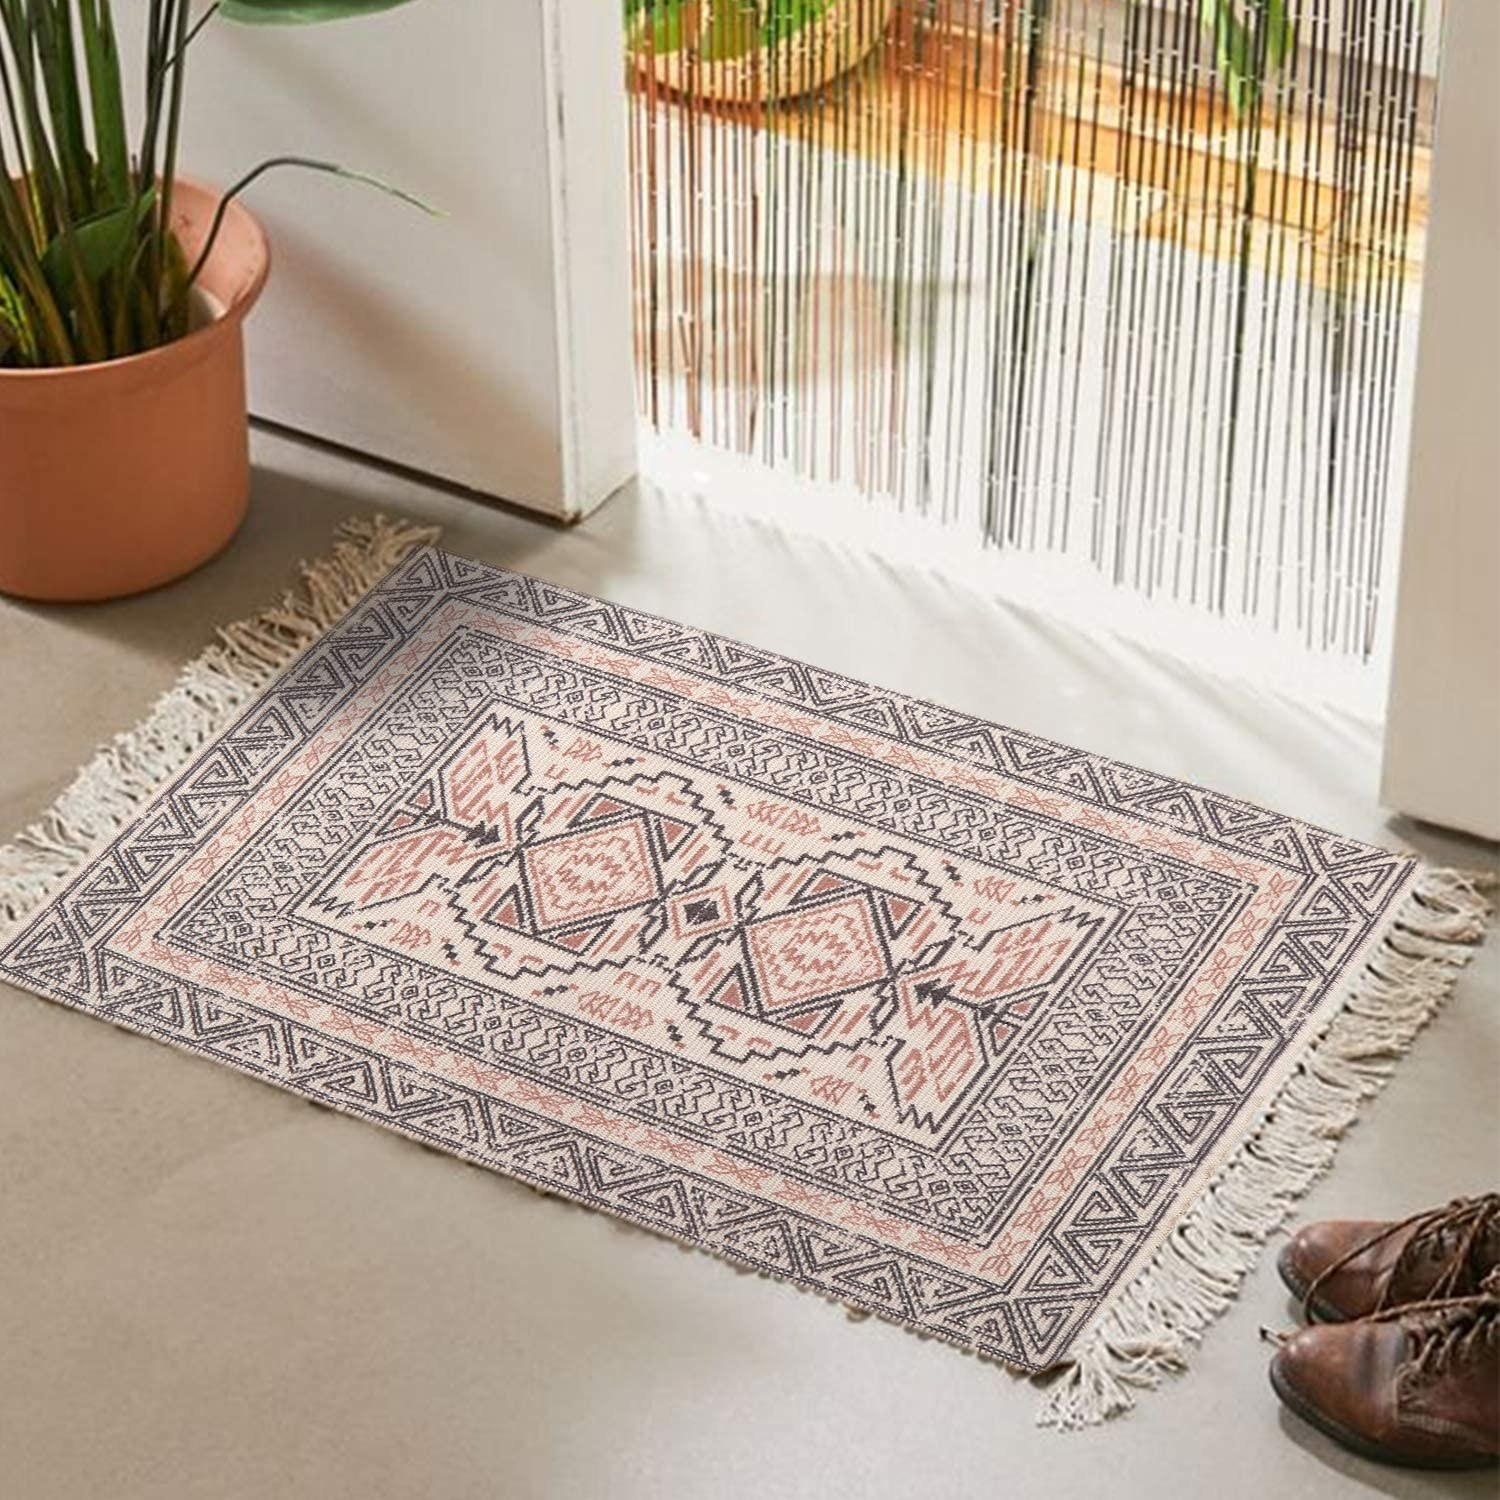 The rectangle rug with fringe on either side and a boho pattern in black and red inside